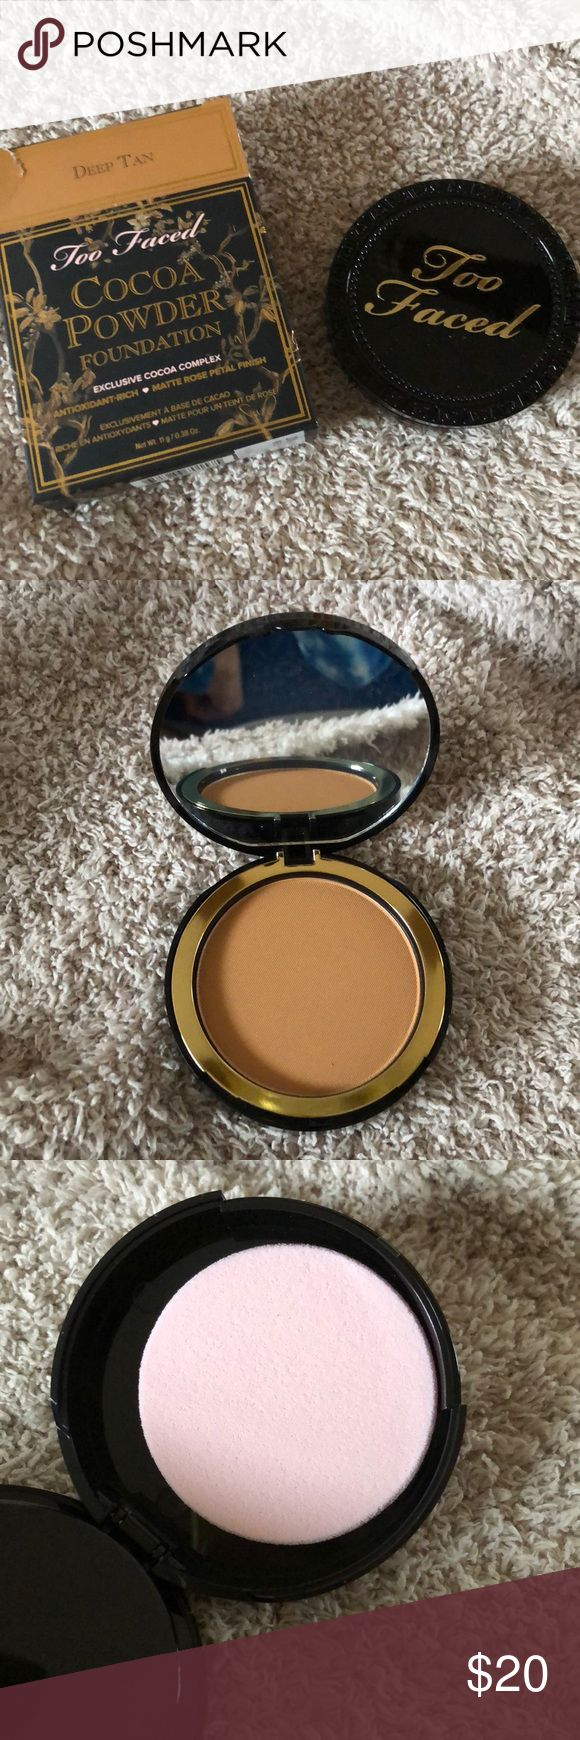 Too Faced Cocoa Powder Foundation Too Faced Cocoa Powder Foundation. Smells just like chocolate! Never been used and comes with sponge to apply the makeup. Deep tan is the color. Too Faced Makeup Face Powder